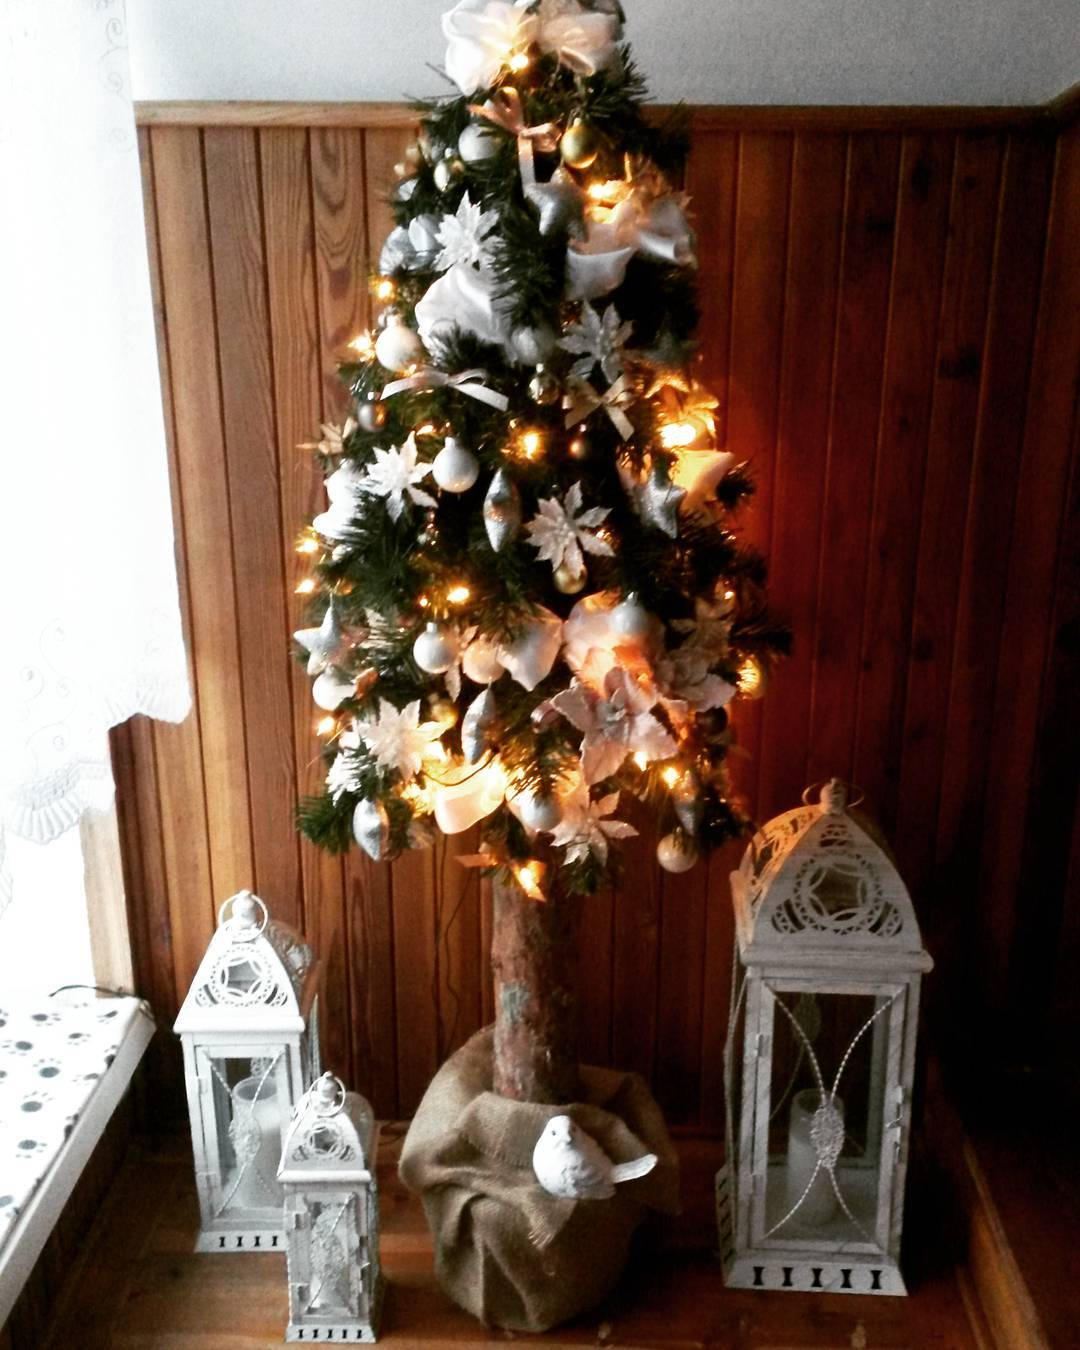 Little Christmas Tree Decorated Woth Snowflakes And Ornaments